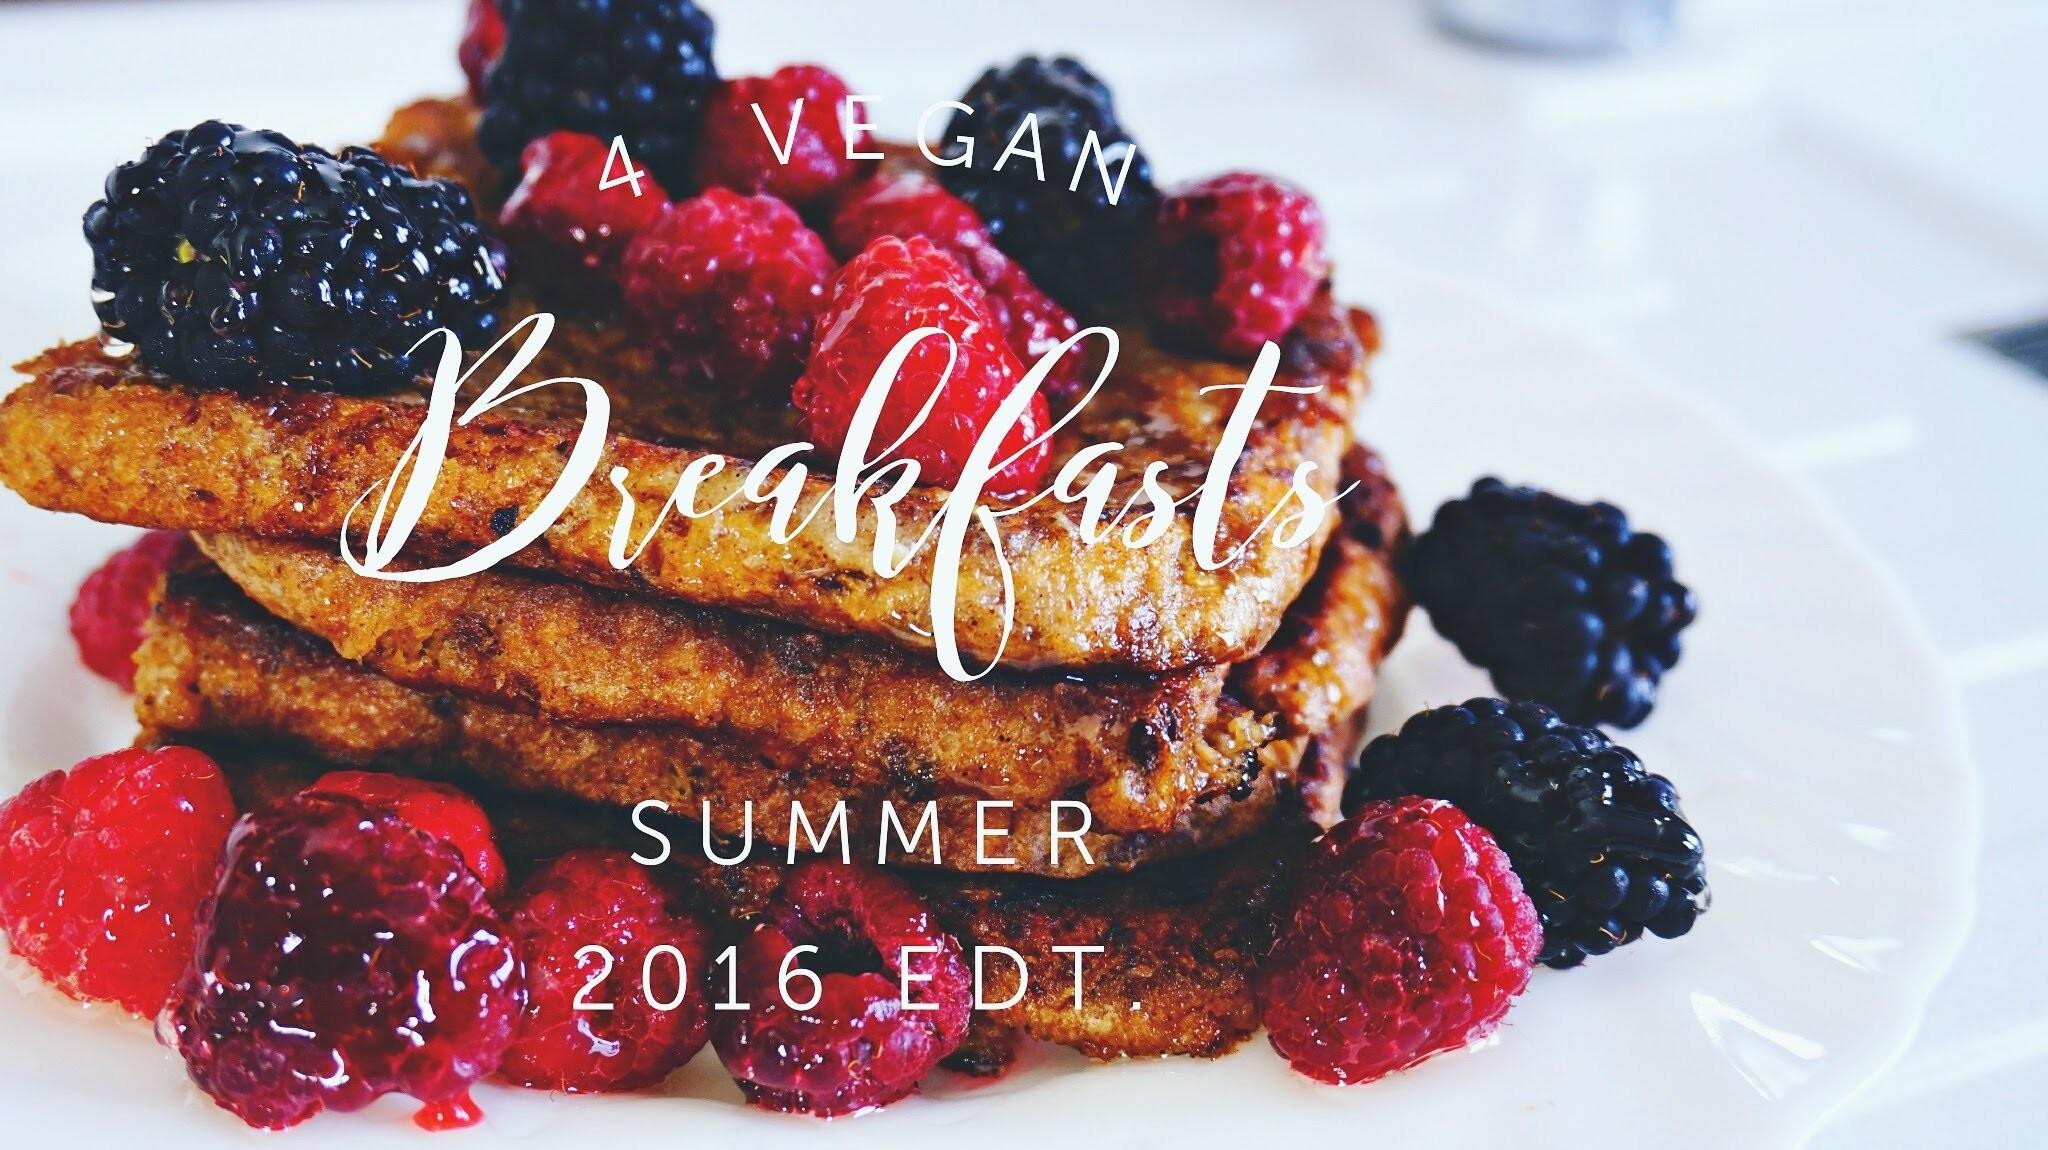 Vegan Breakfast Ideas Summer Edt Thecookbook